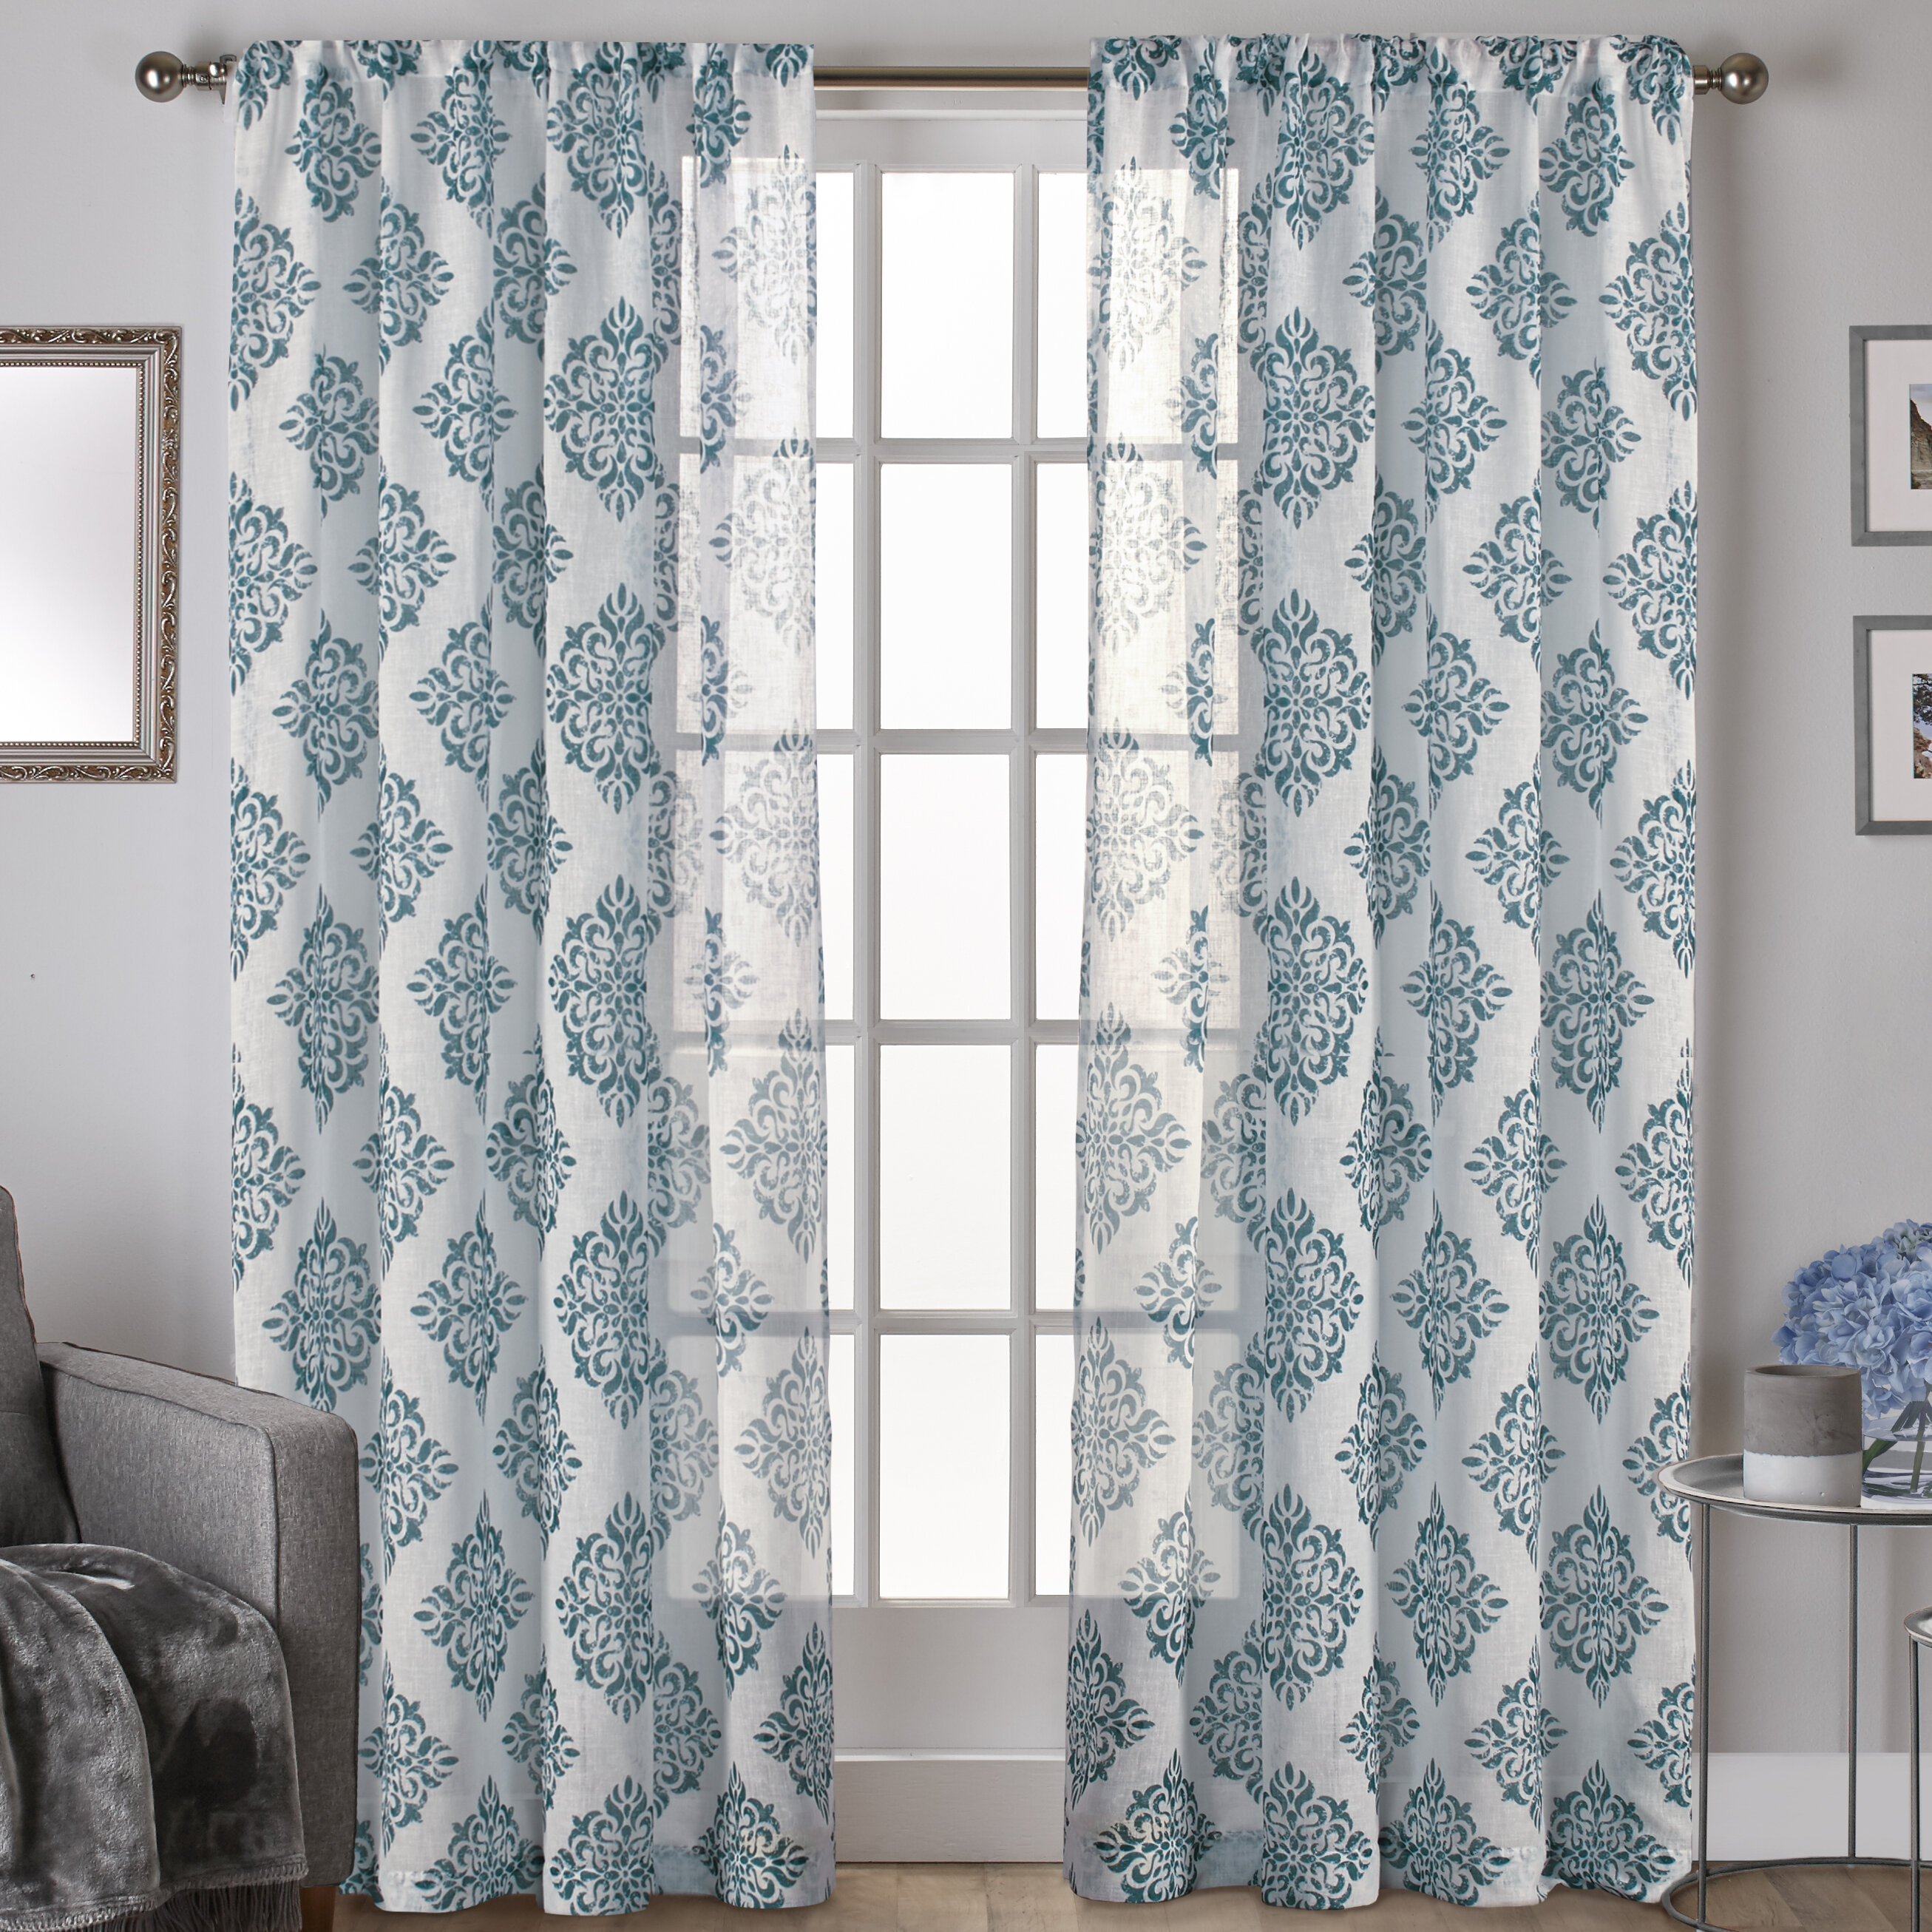 Knisley Belgian Ikat Sheer Rod Pocket Panel Pair With Belgian Sheer Window Curtain Panel Pairs With Rod Pocket (View 16 of 20)